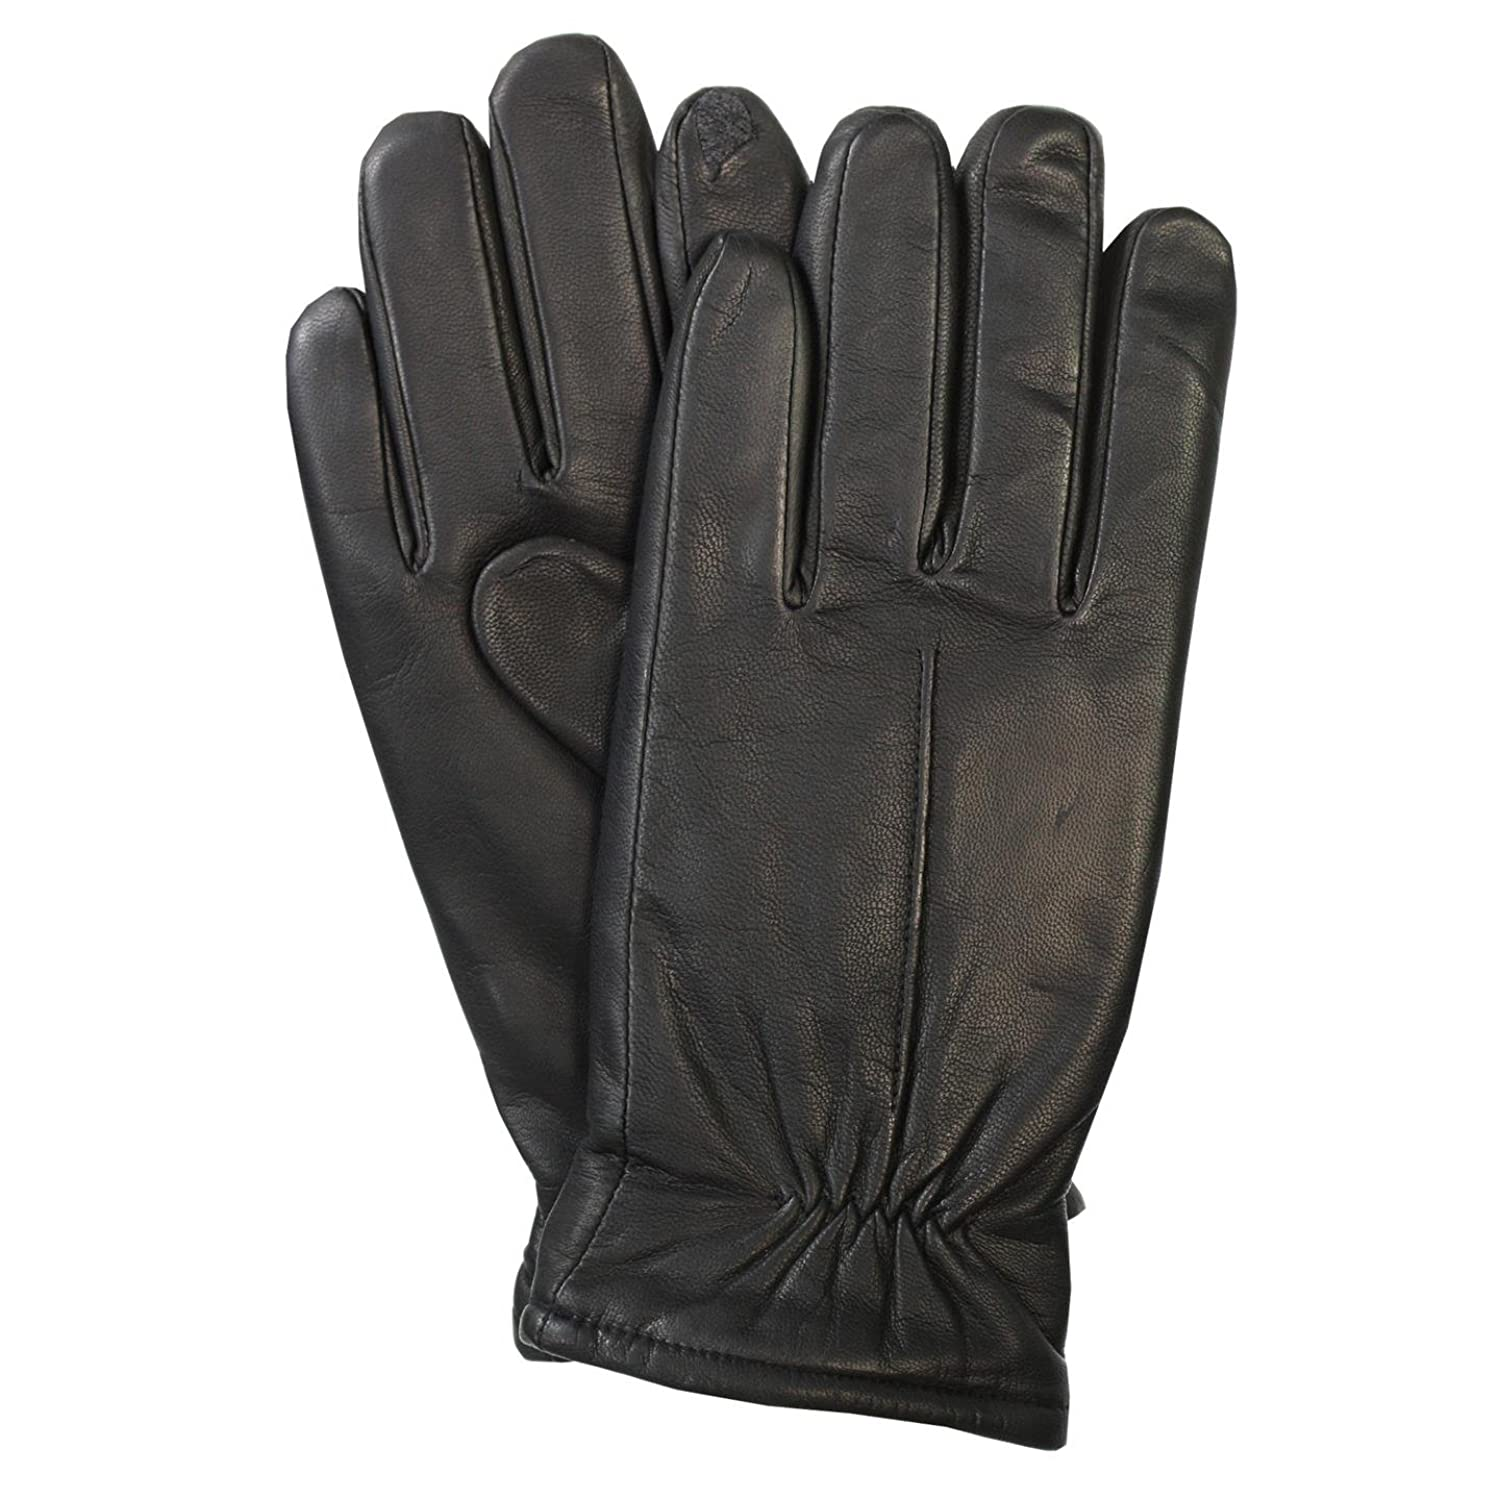 Mens gloves isotoner - Isotoner Mens Smartouch Technology Genuine Leather Gloves M Black At Amazon Men S Clothing Store